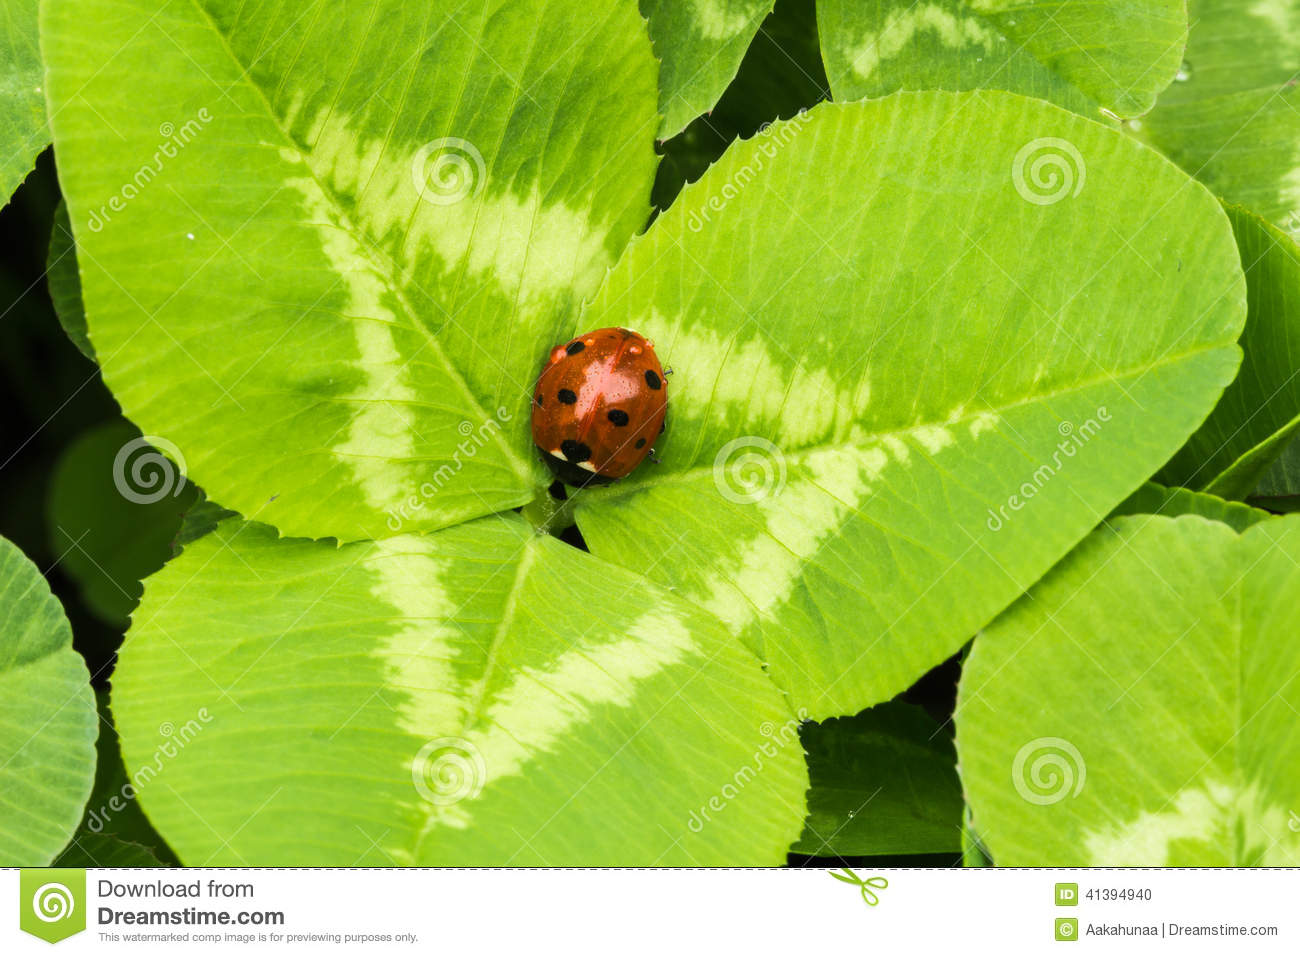 Finding Some Spots Of Bright Color At >> The Beetles Stock Photo Image Of Insects Ecology Close 41394940